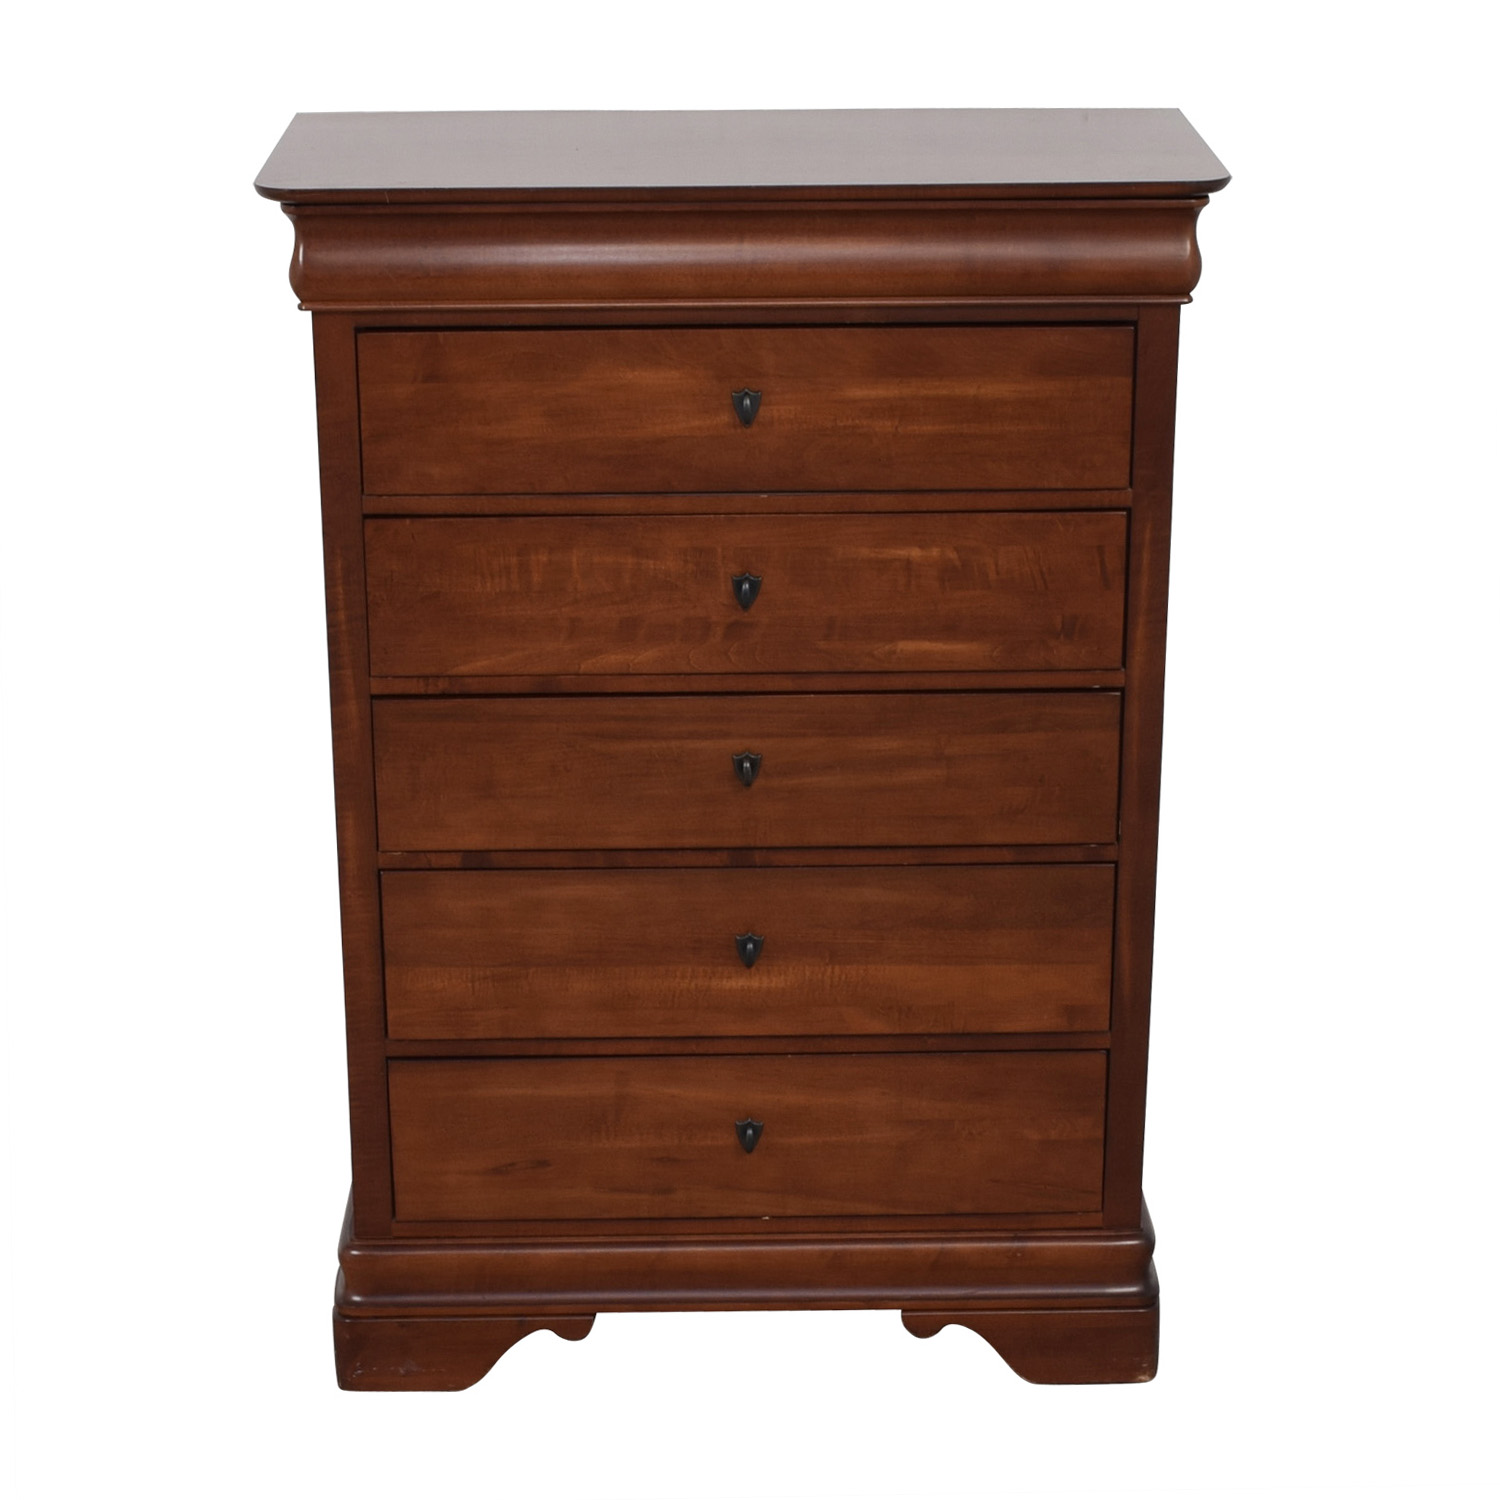 Kincaid Kincaid Wood Six-Drawer Chest of Drawers discount